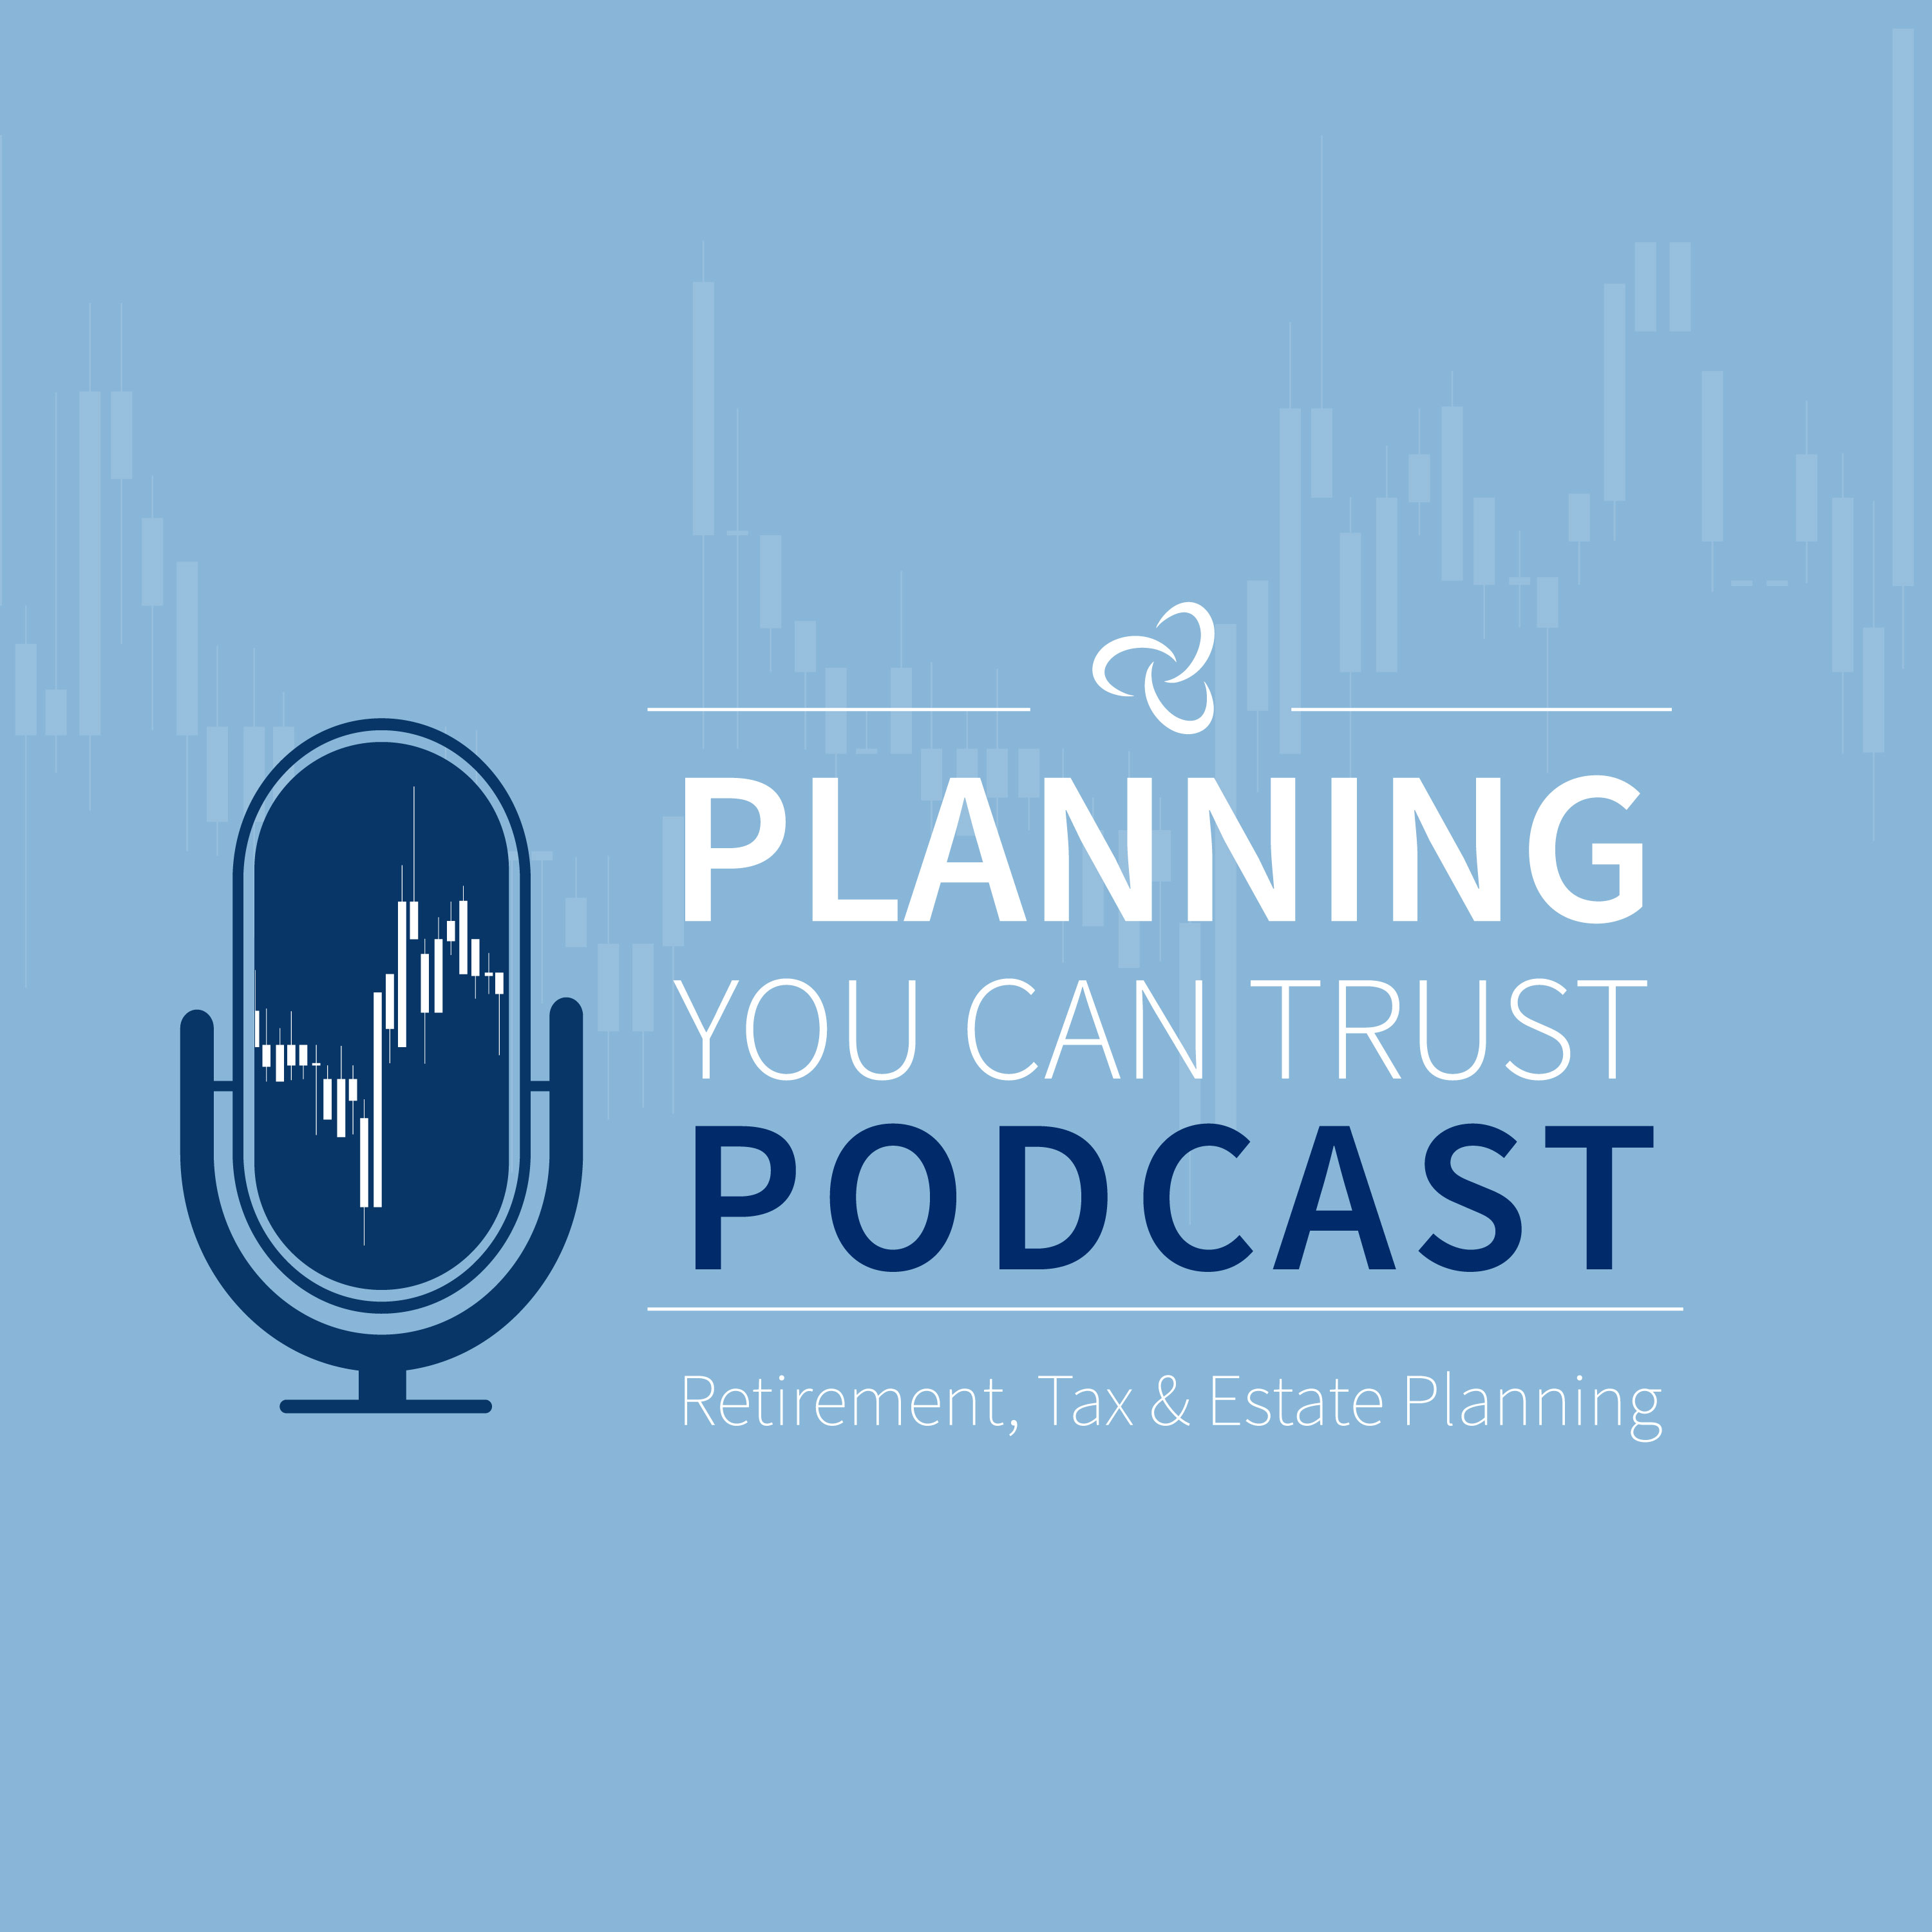 Planning You Can Trust